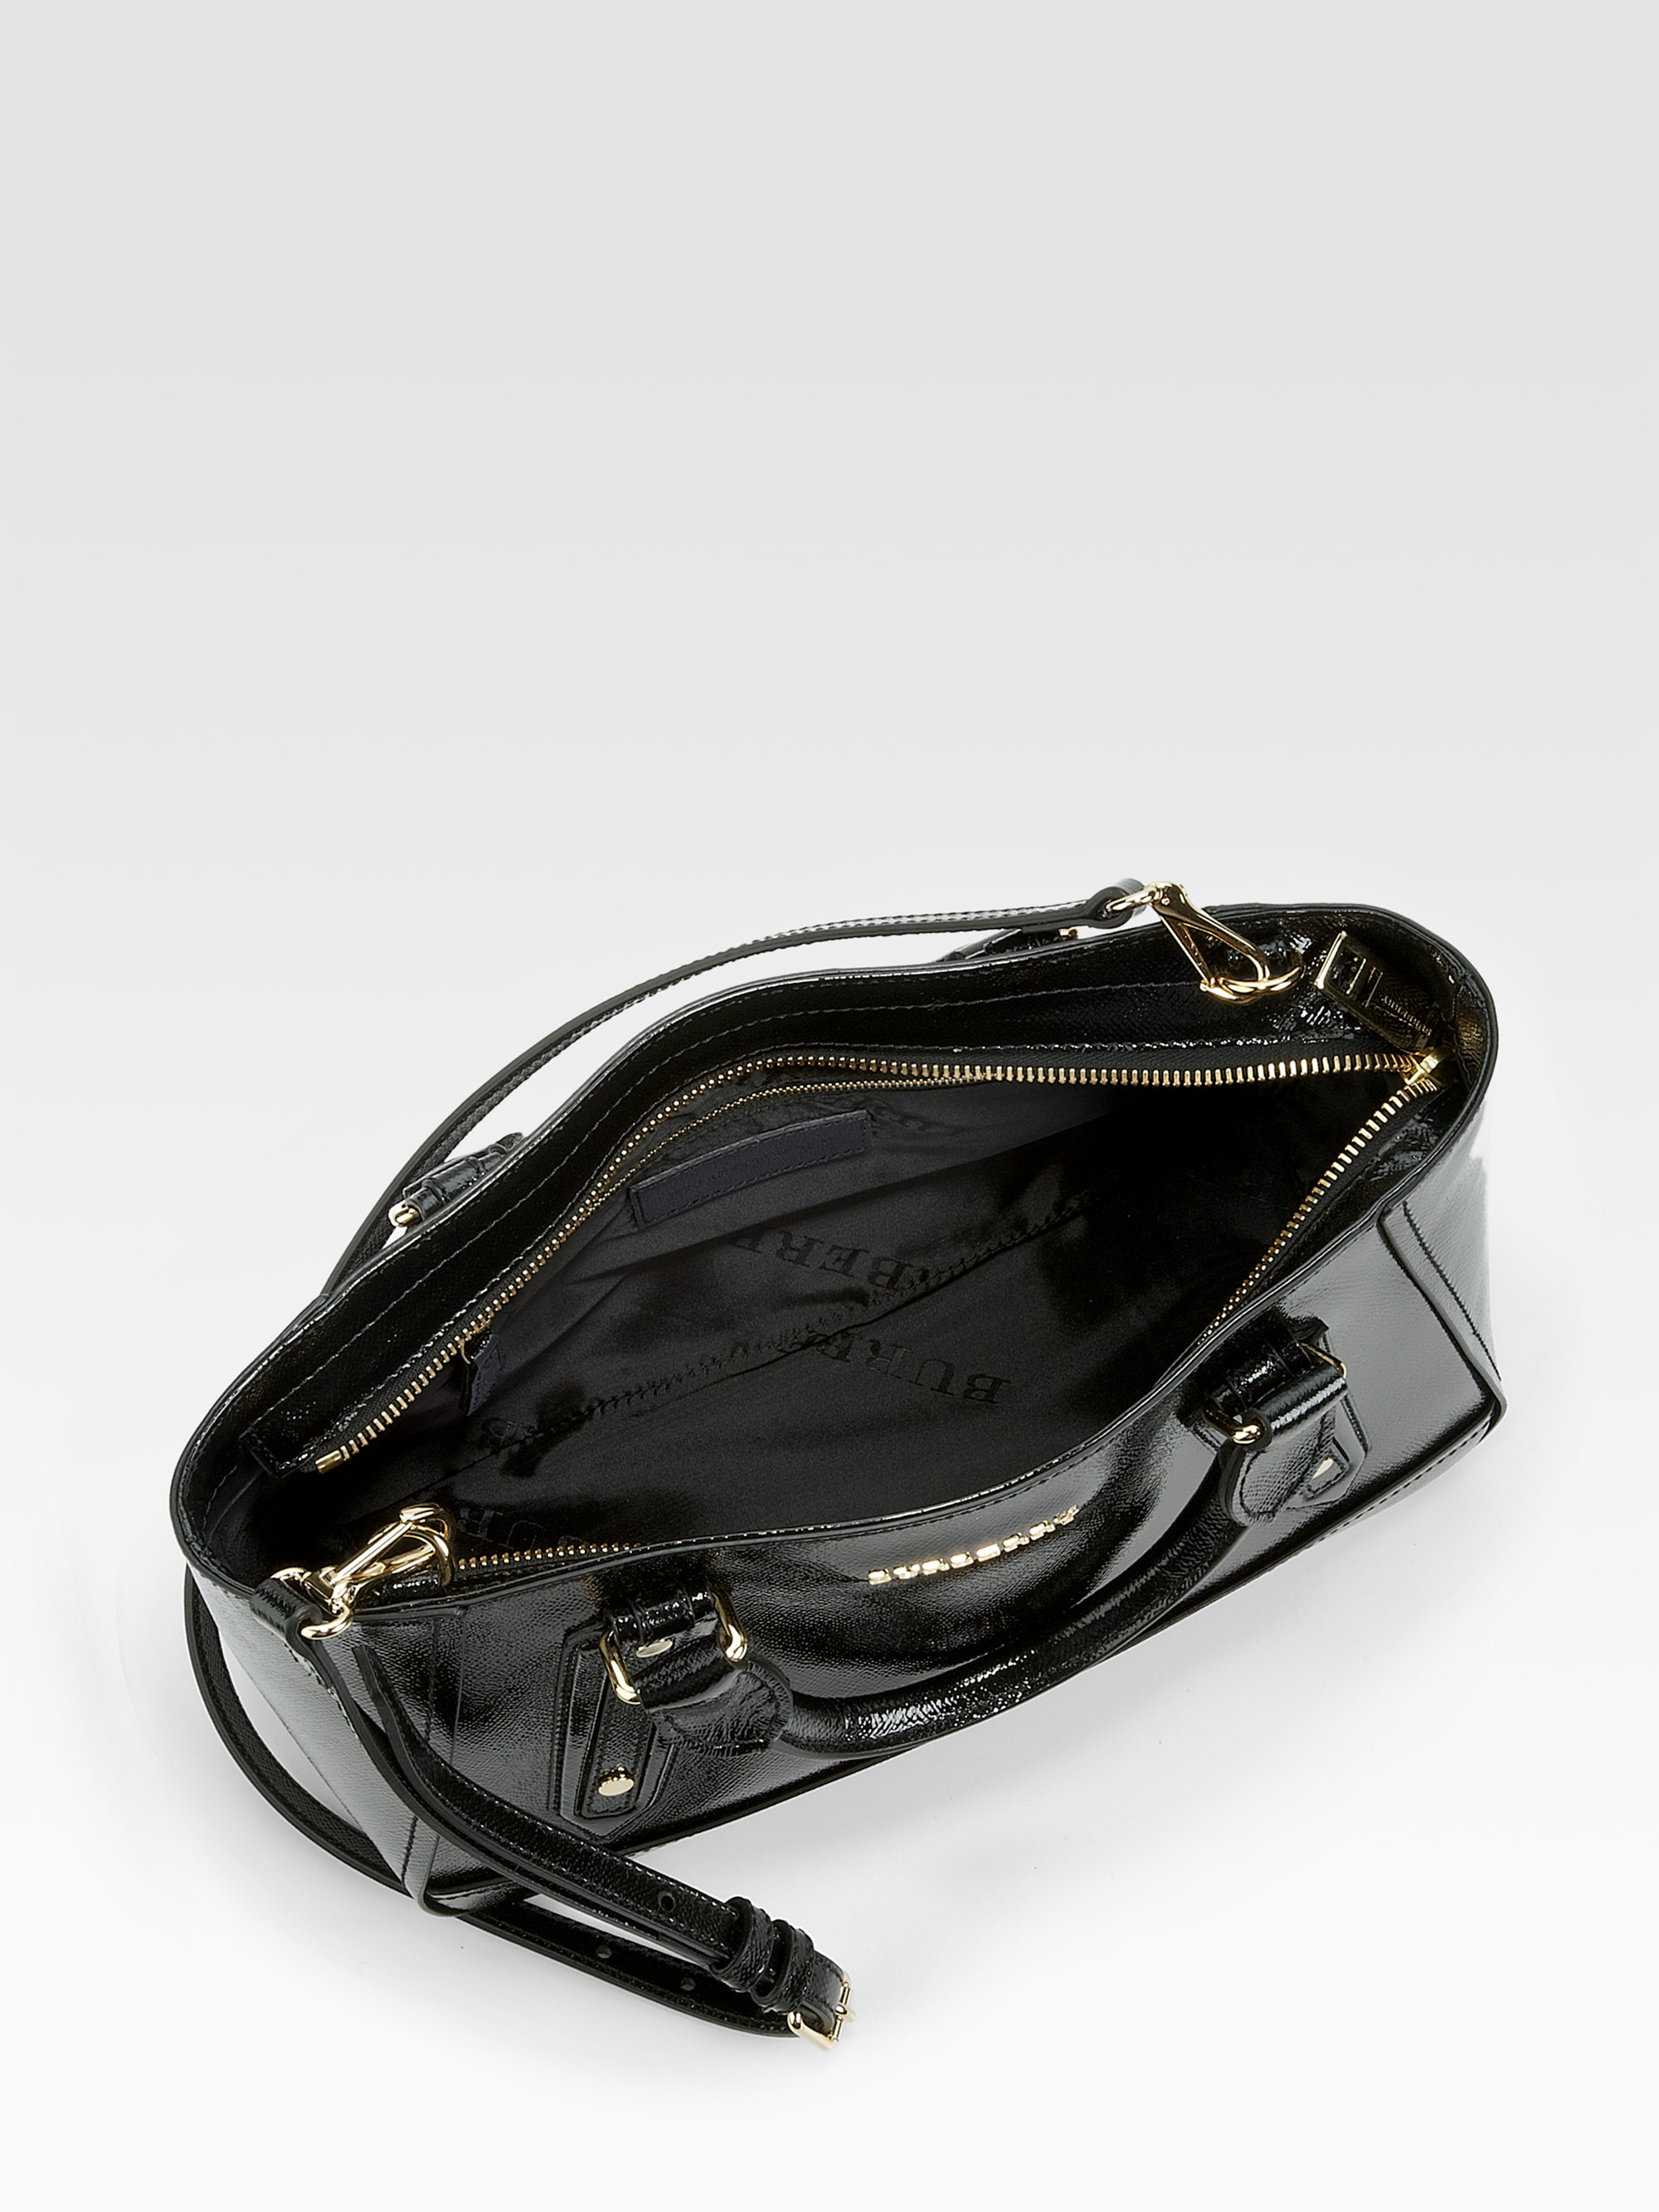 caecdb431947 Burberry Black Patent Leather Purse - New image Of Purse